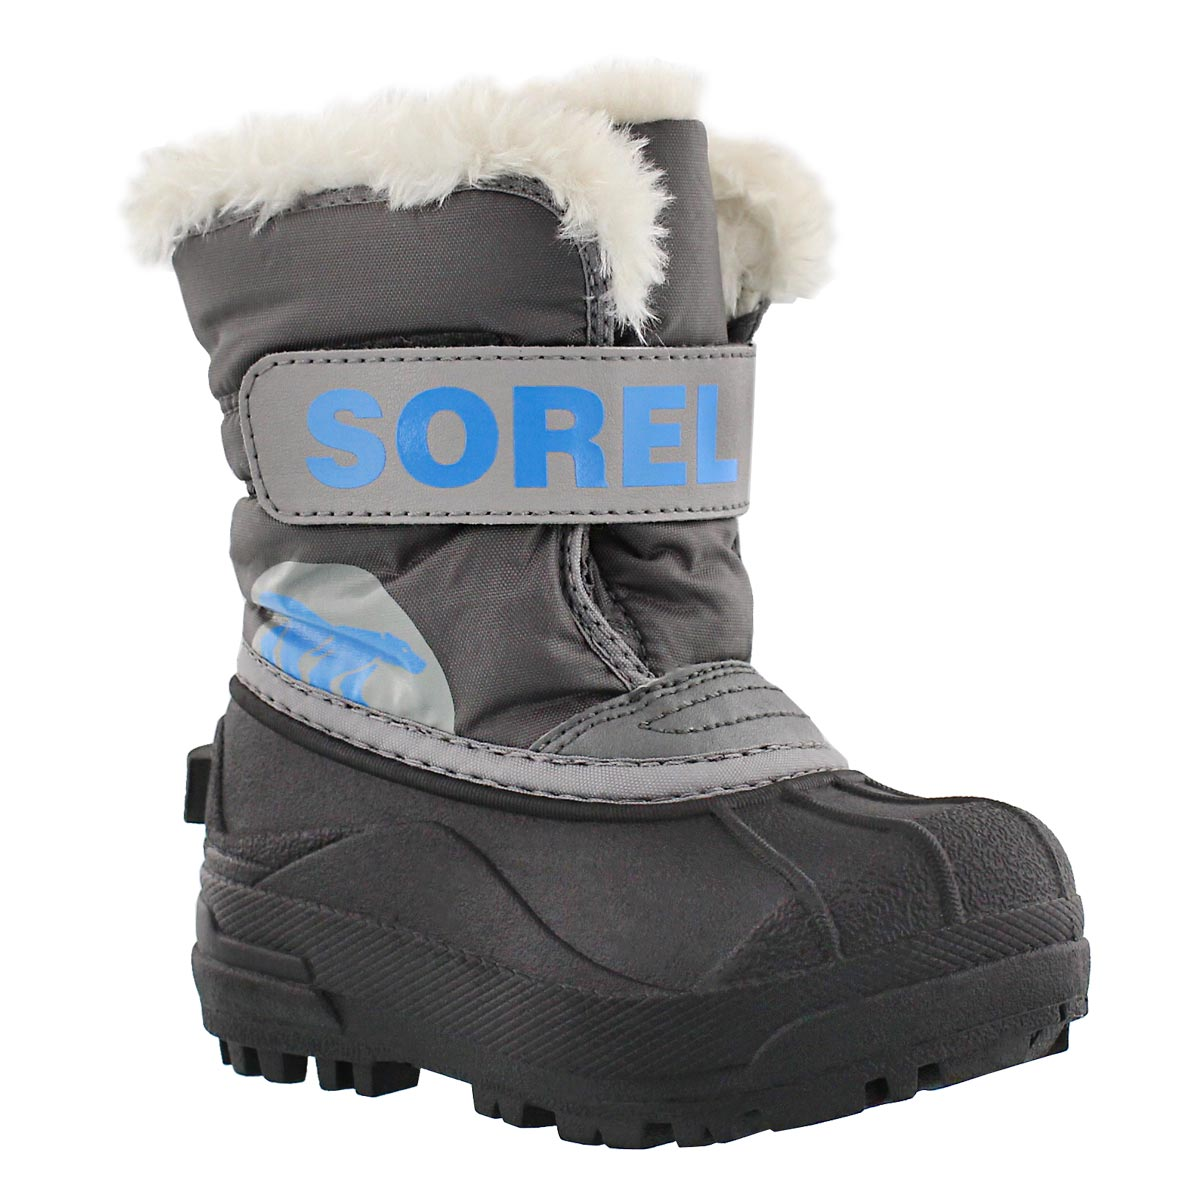 Inf Snow Commander dk fog/lt gry boot